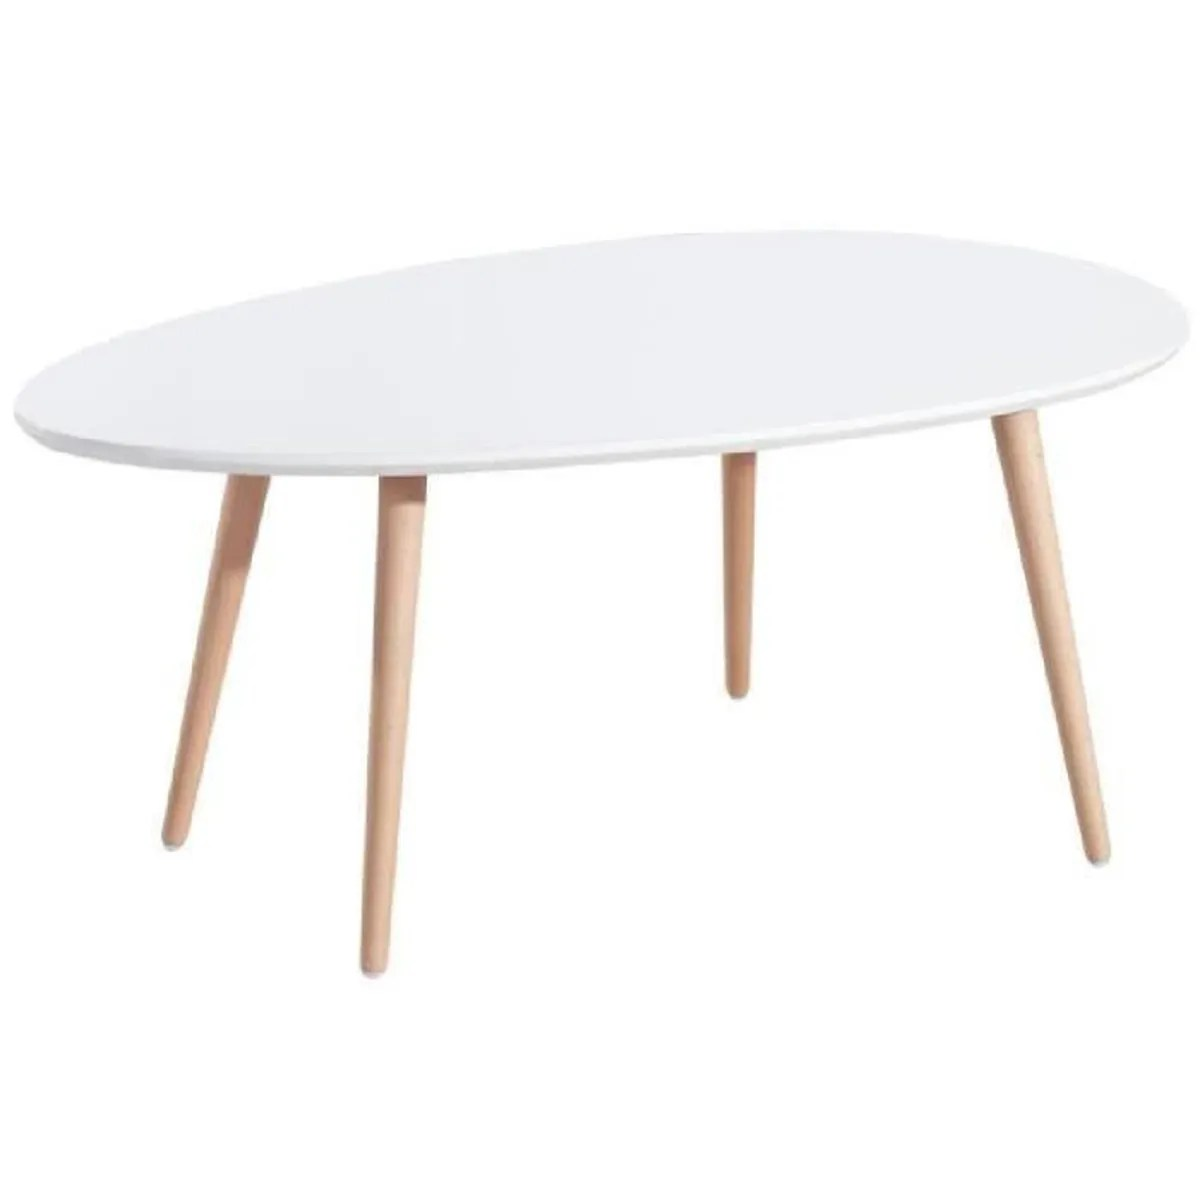 Cdiscount Meuble Scandinave Table Basse Scandinave Achat Vente Table Basse